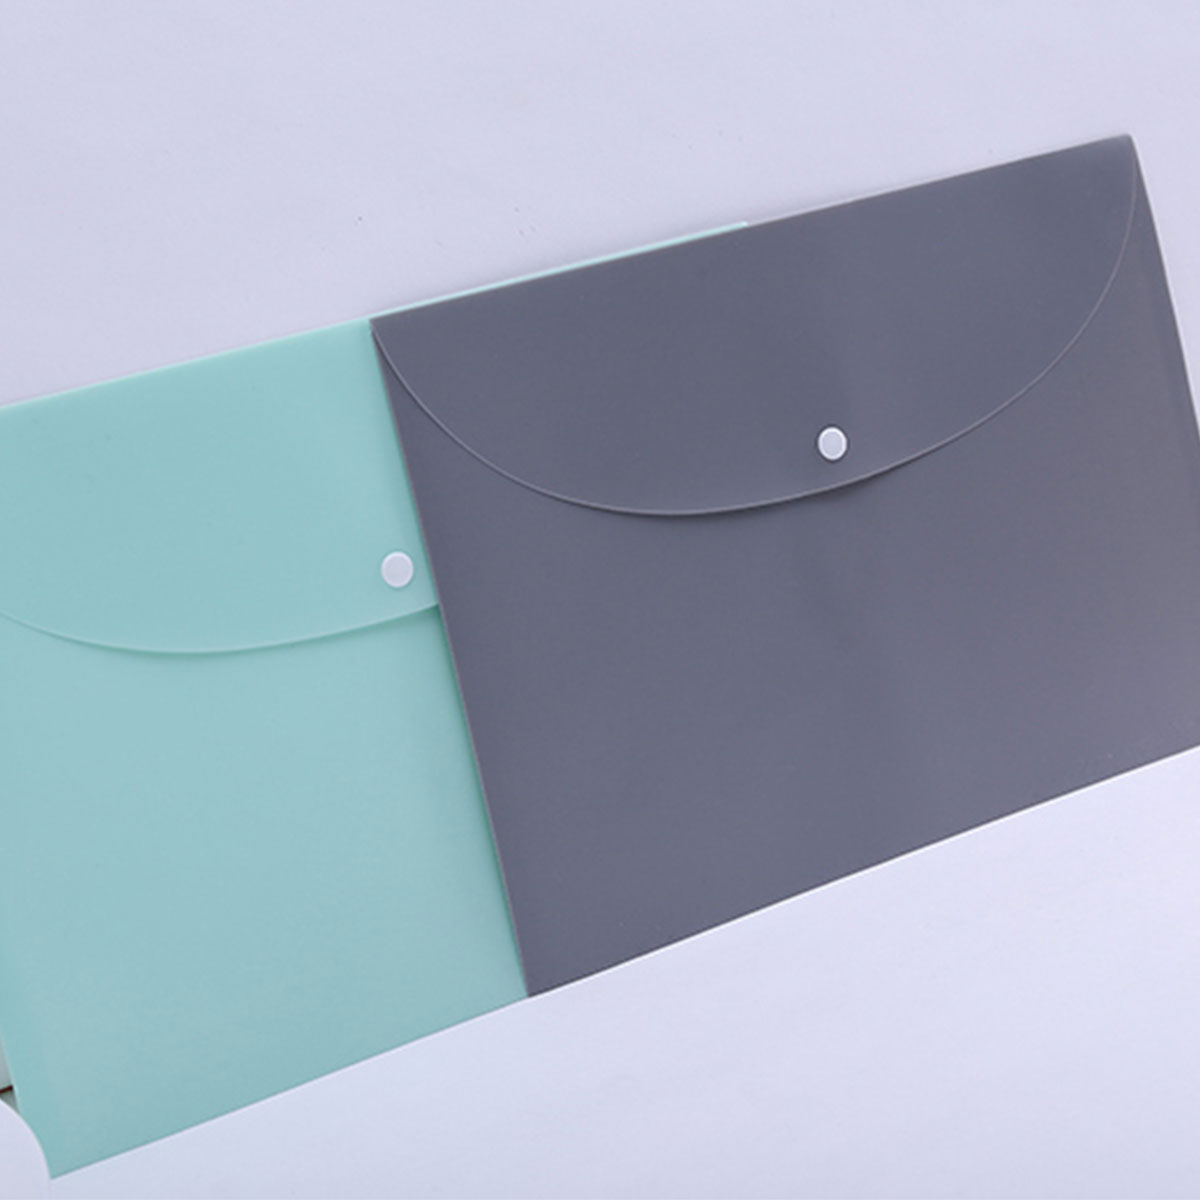 PP file storage 2 only - blue gray